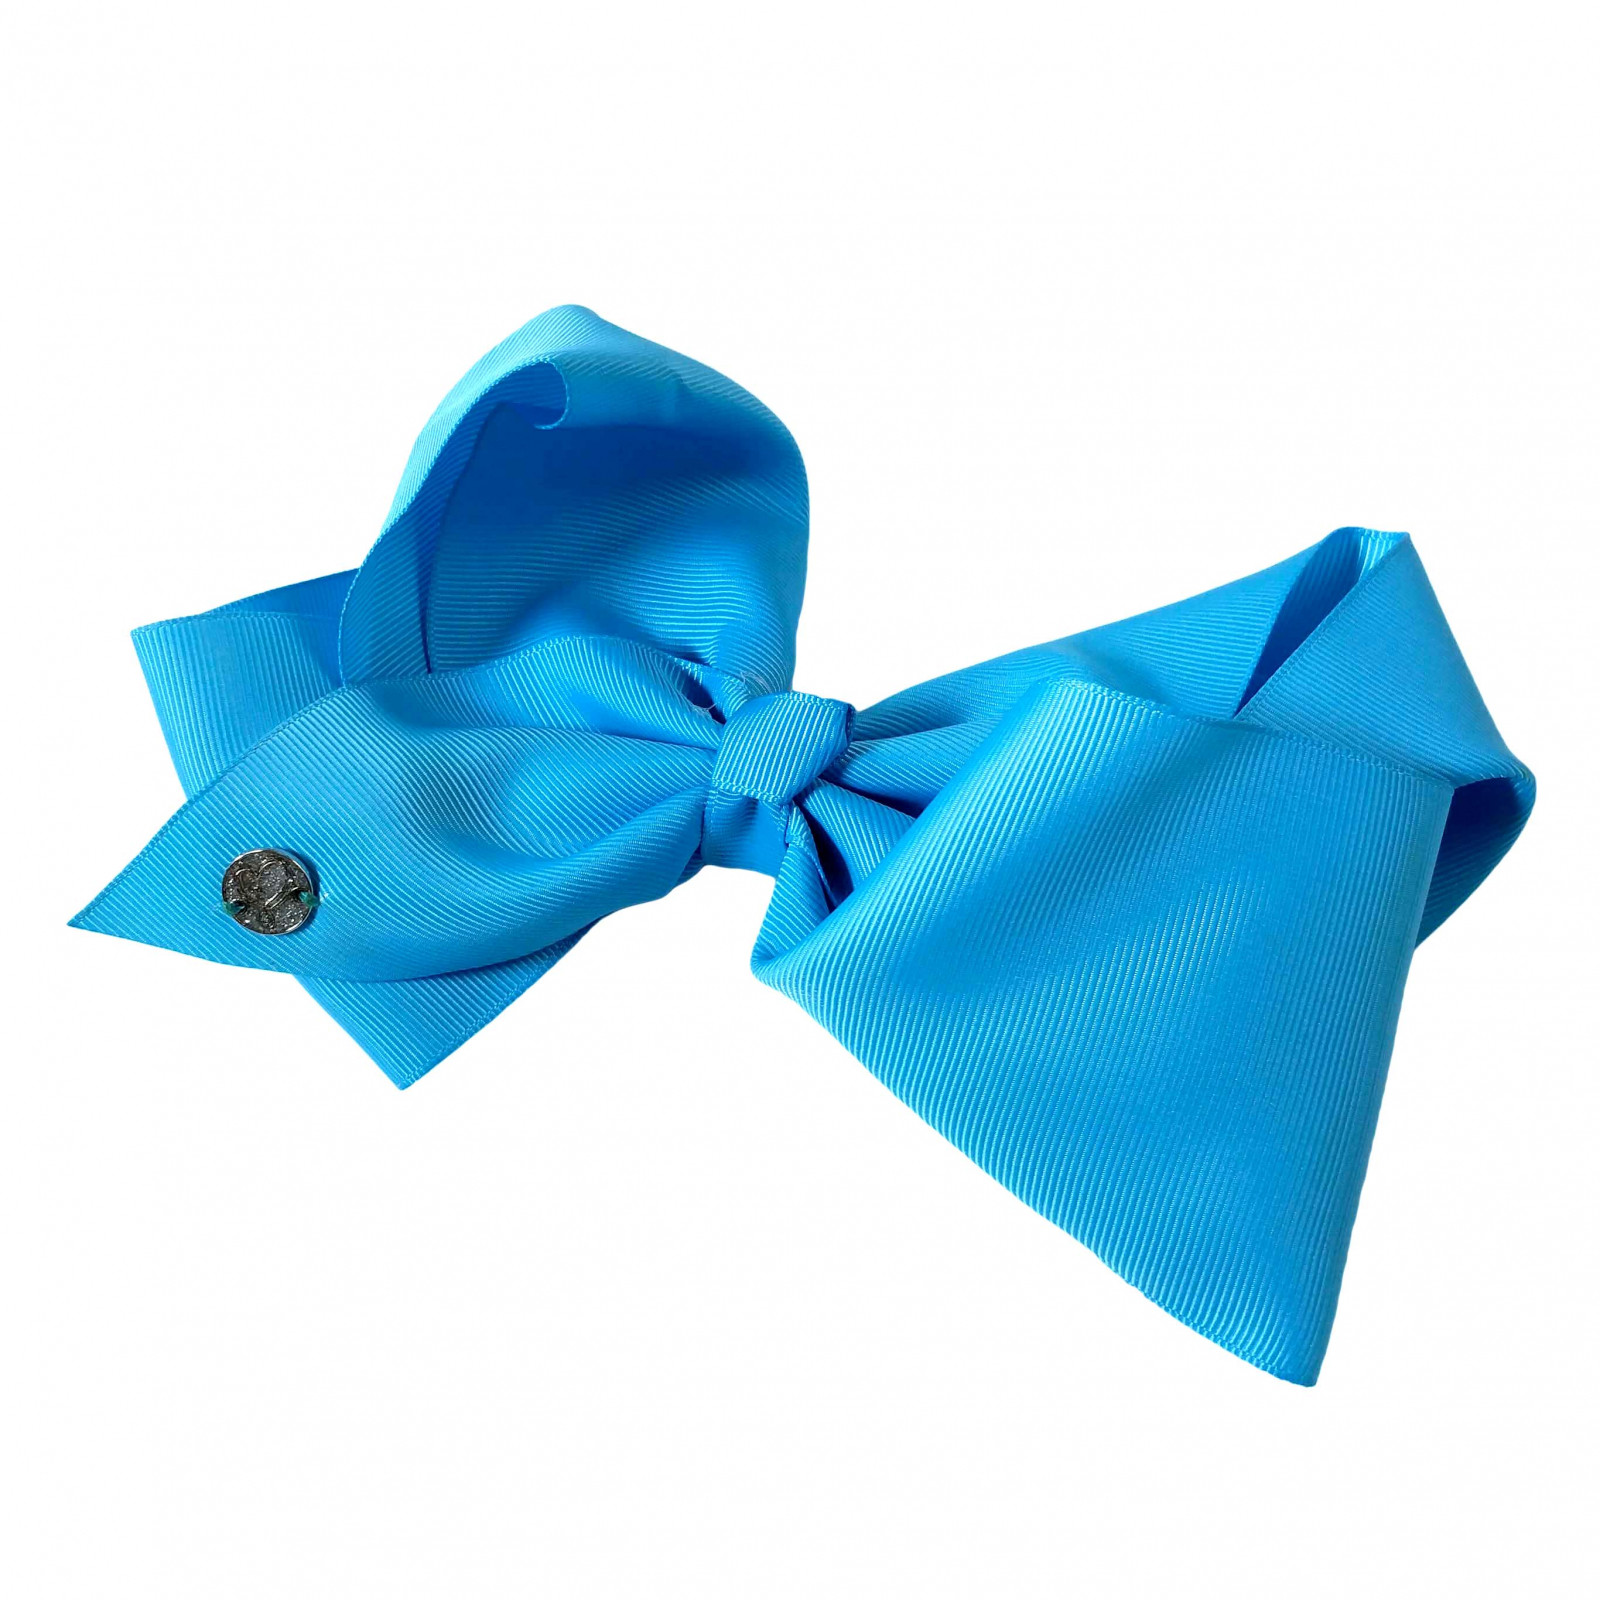 Nickelodeon JoJo Siwa Girls Large Neon Blue Bow Kids Fashion